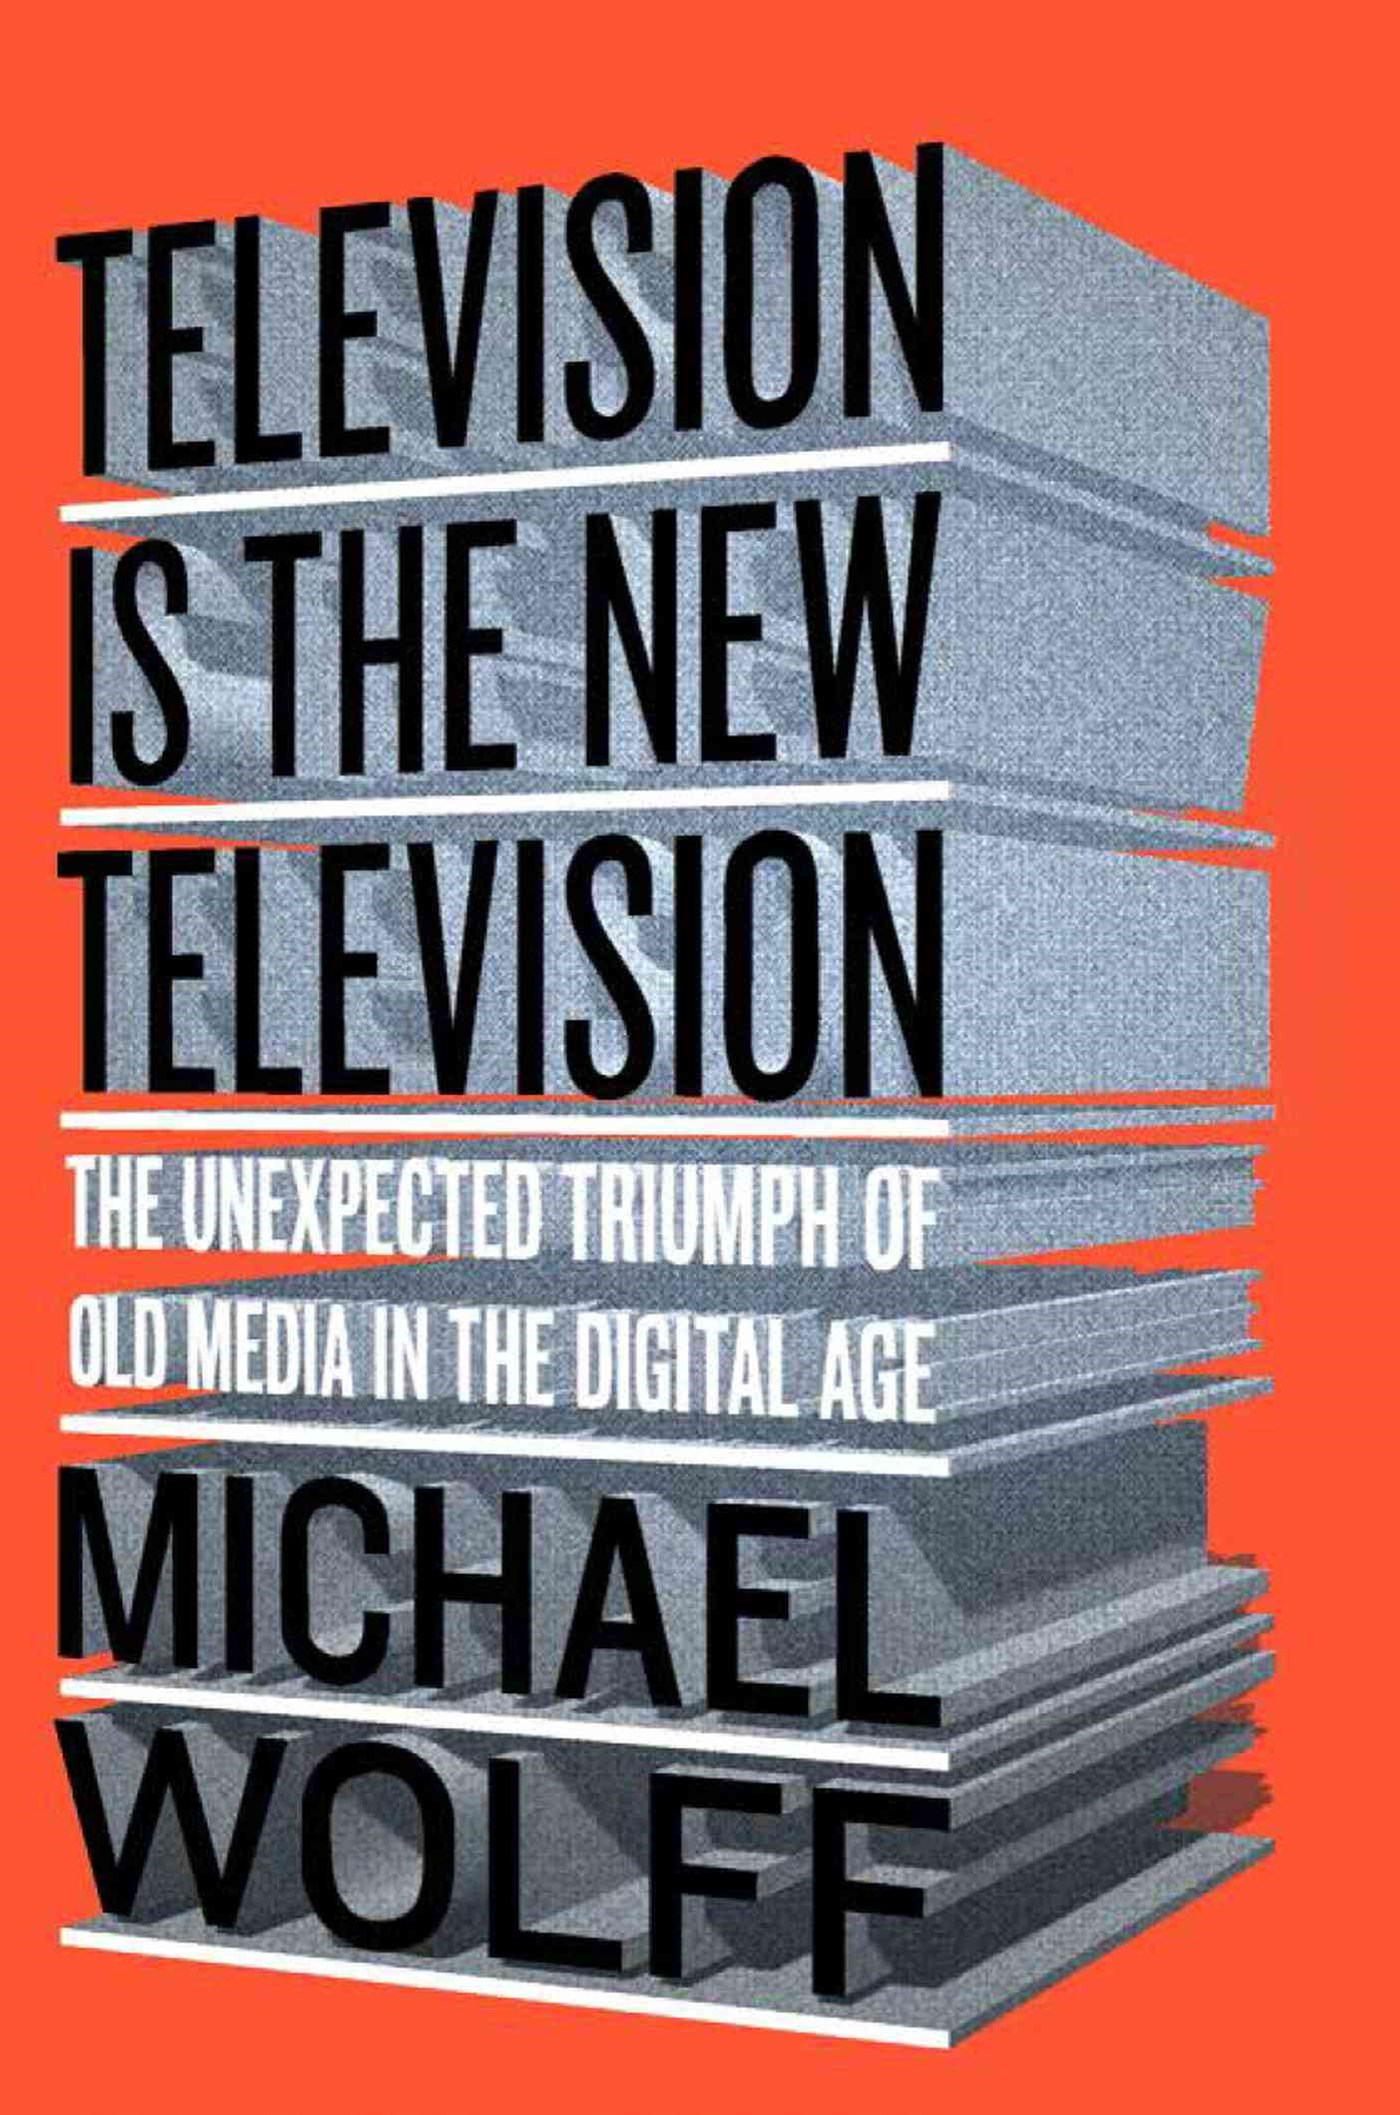 Television Is The New TelevisionOld Media In The Digital Age